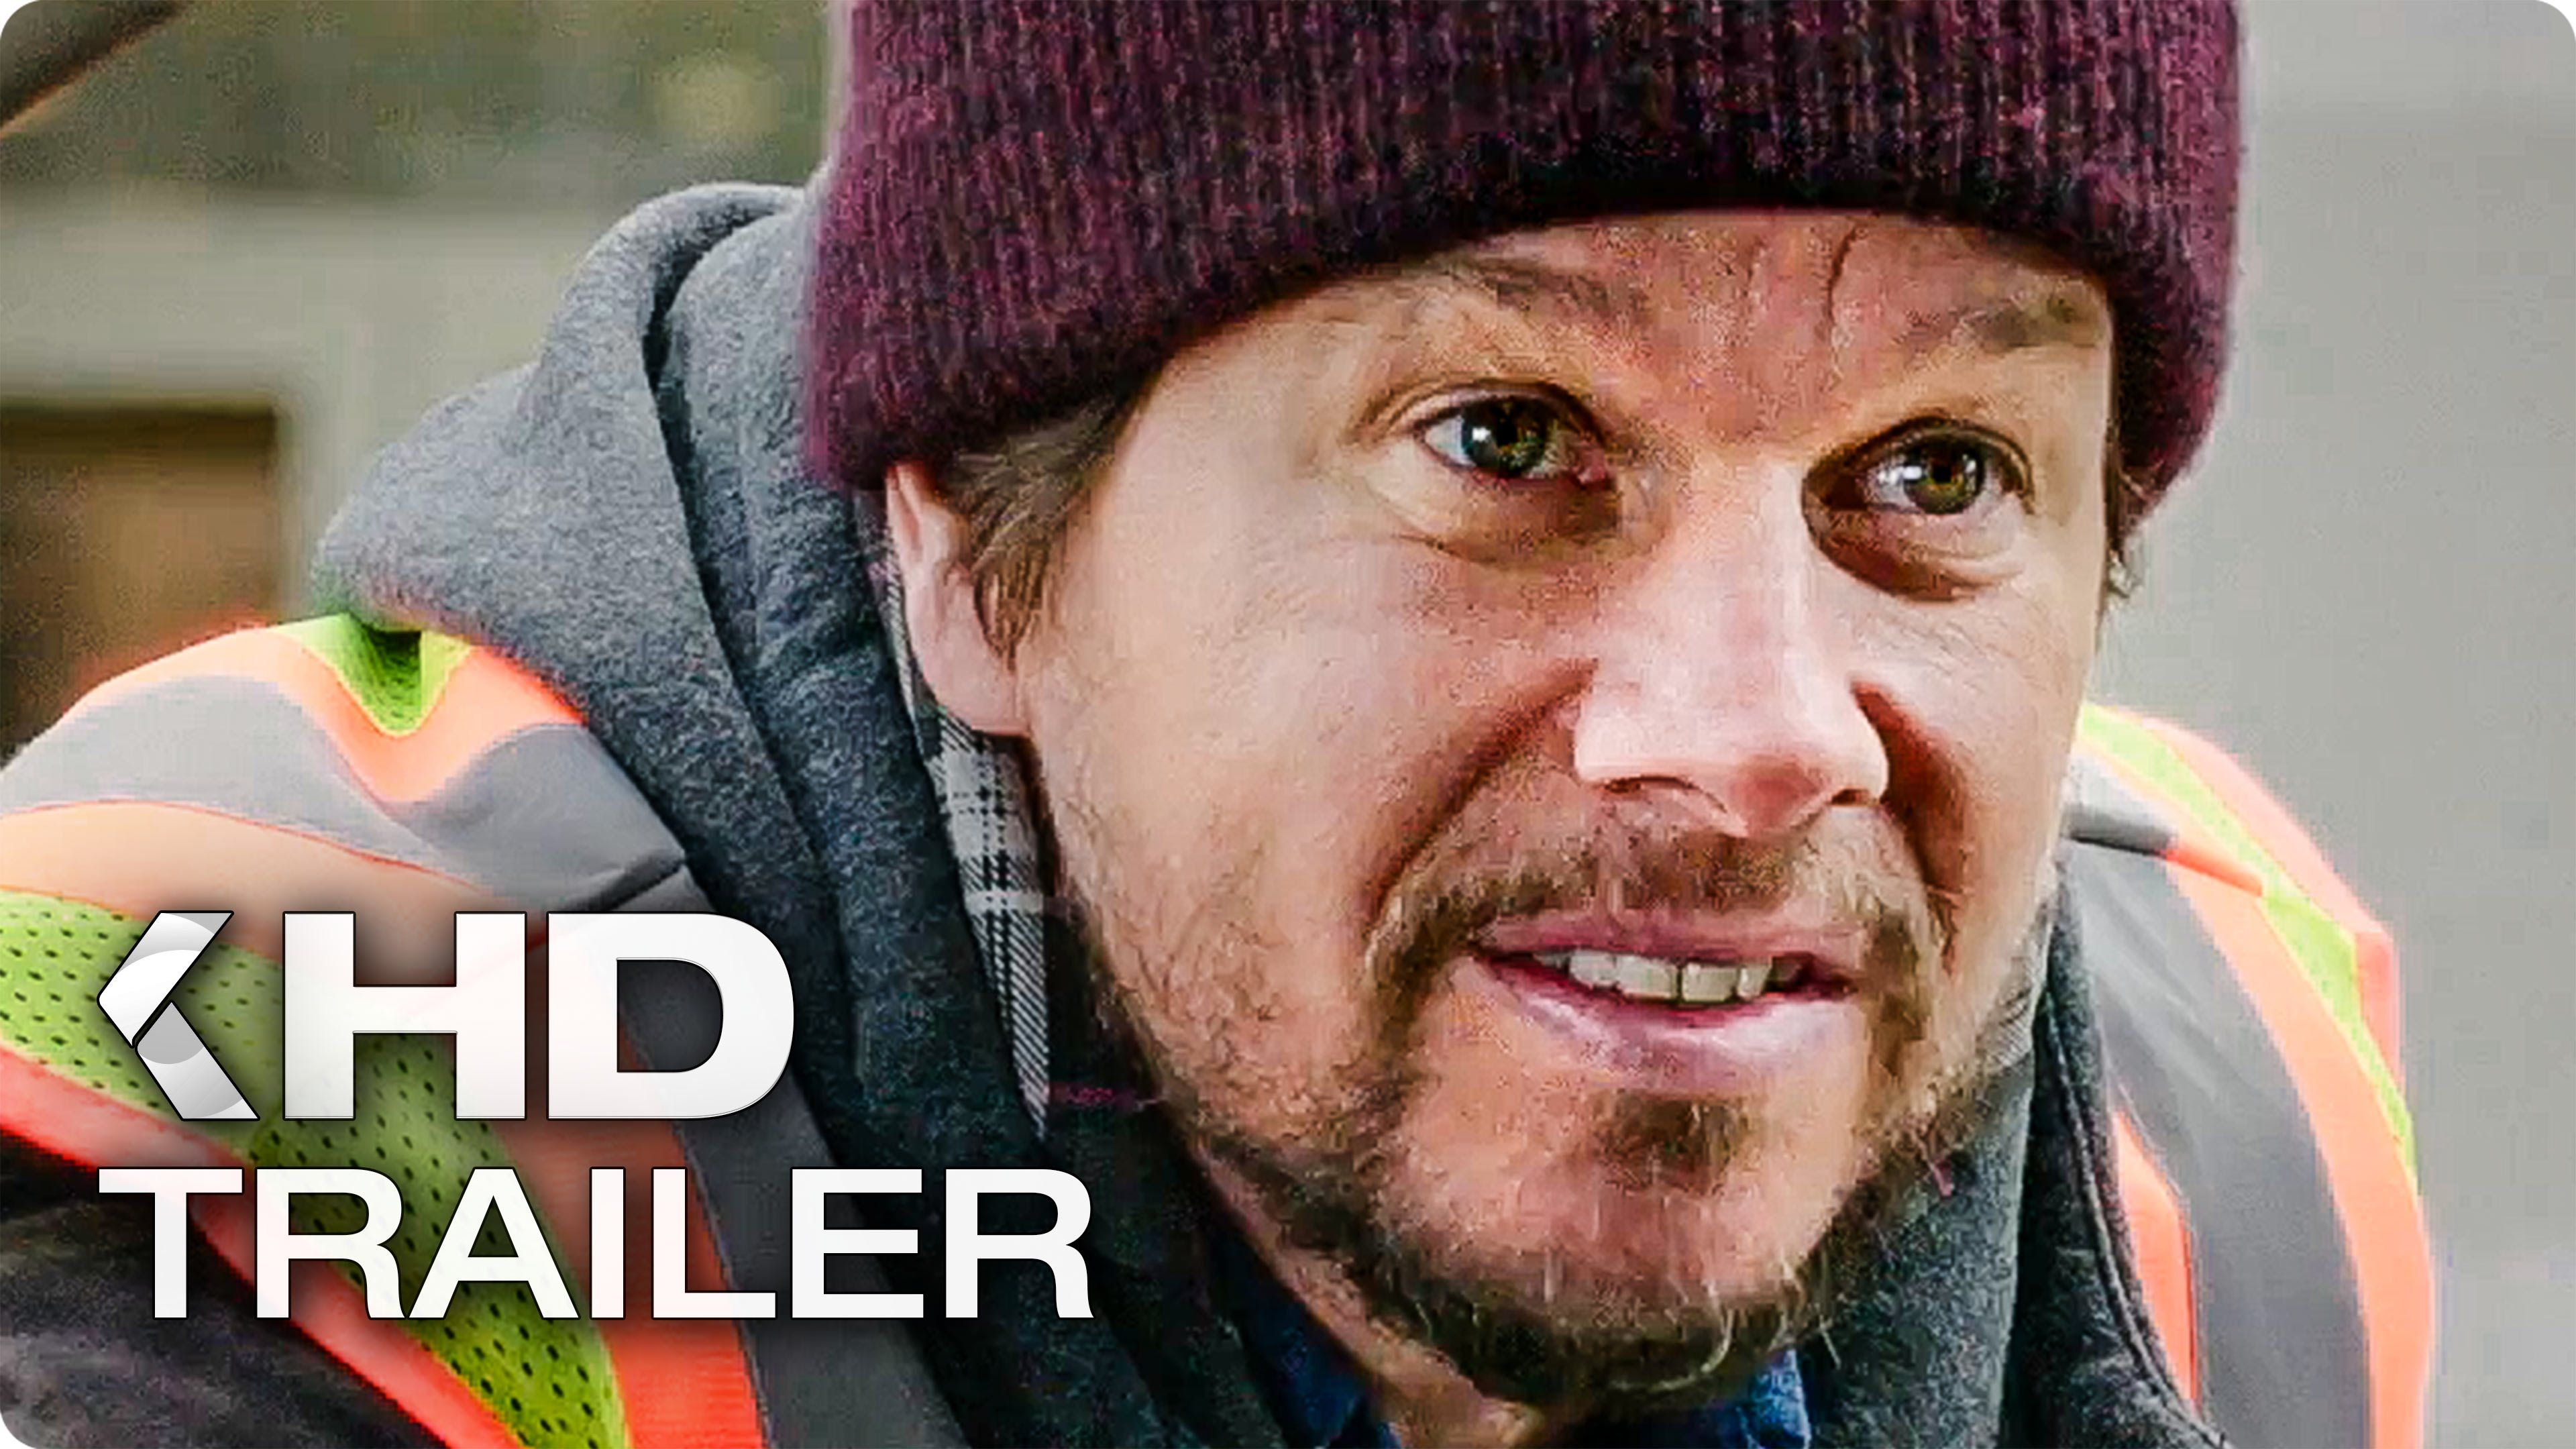 Daddys home 2 trailer 2017 daddys home movie